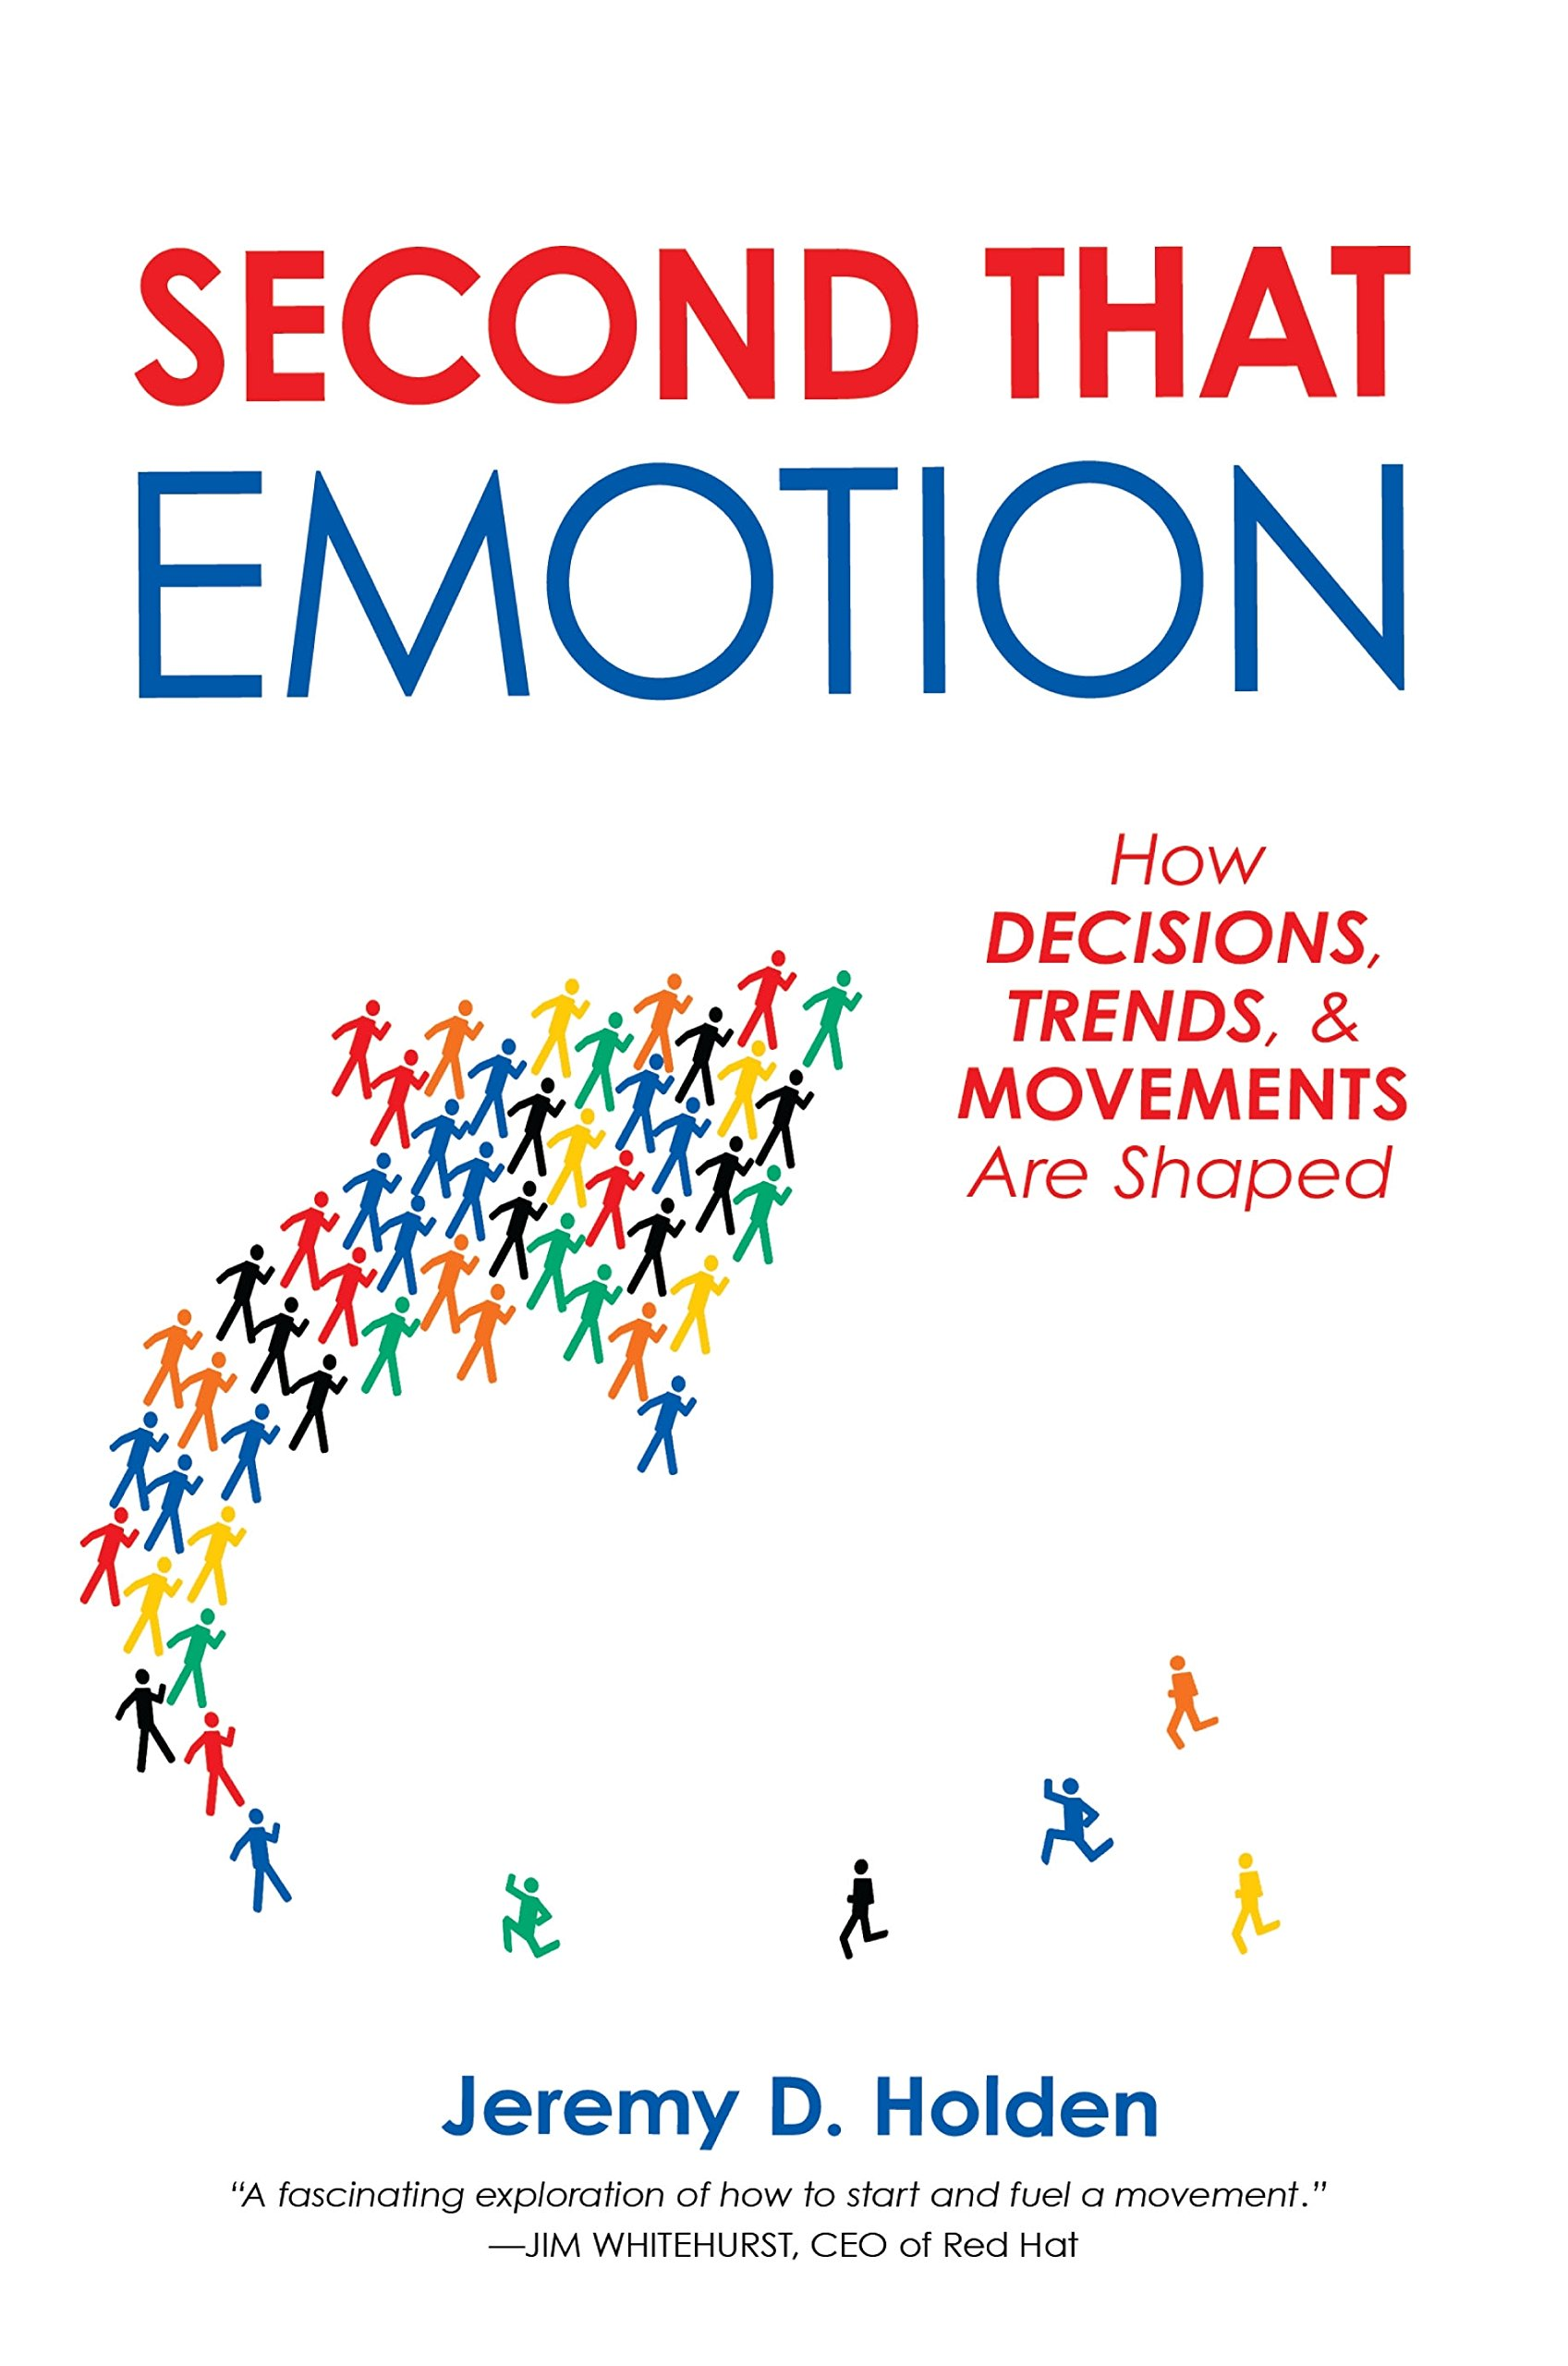 Image OfSecond That Emotion: How Decisions, Trends, & Movements Are Shaped